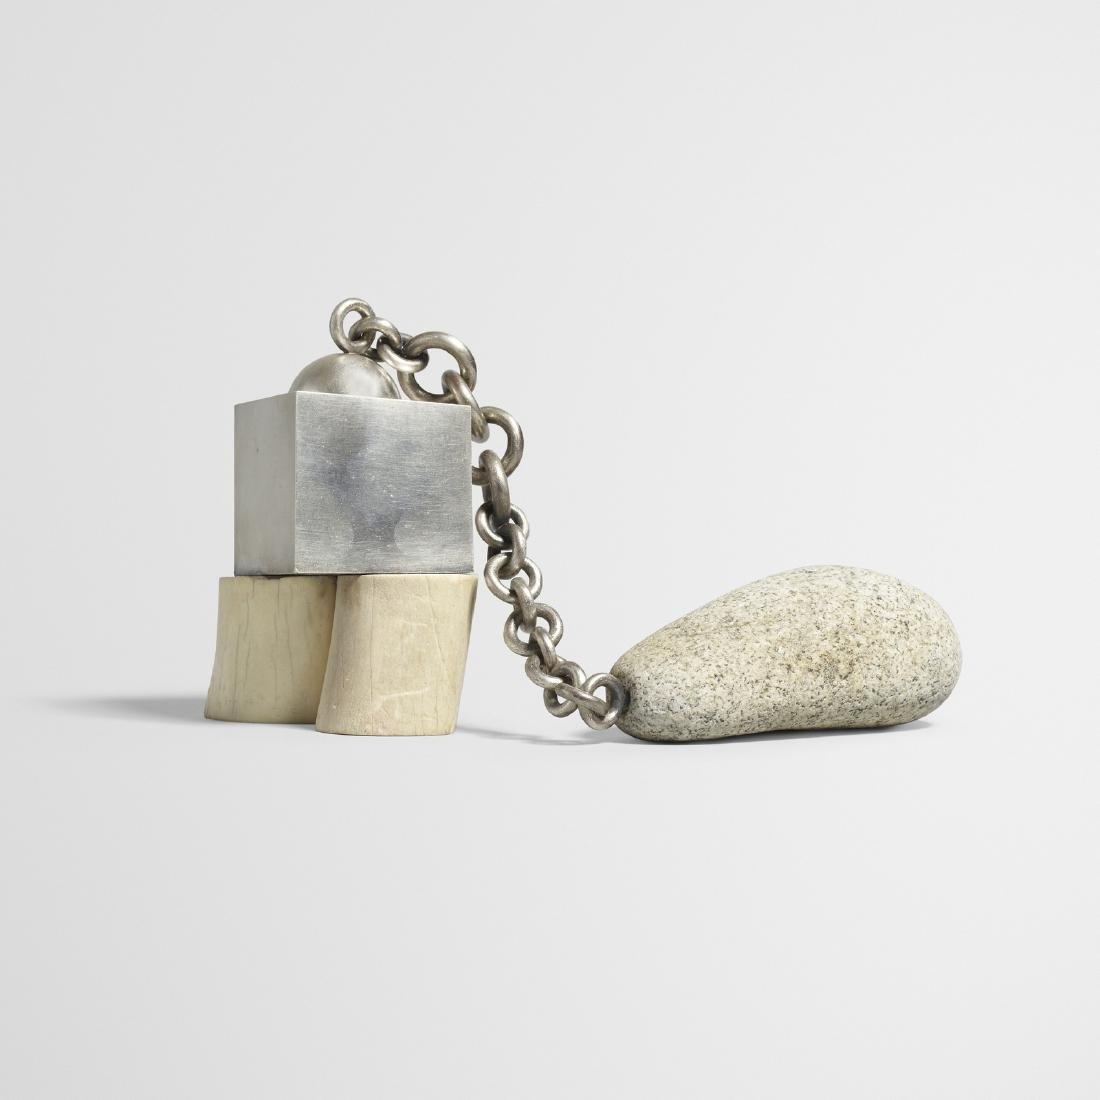 John Prip, Box Chained to a Stone